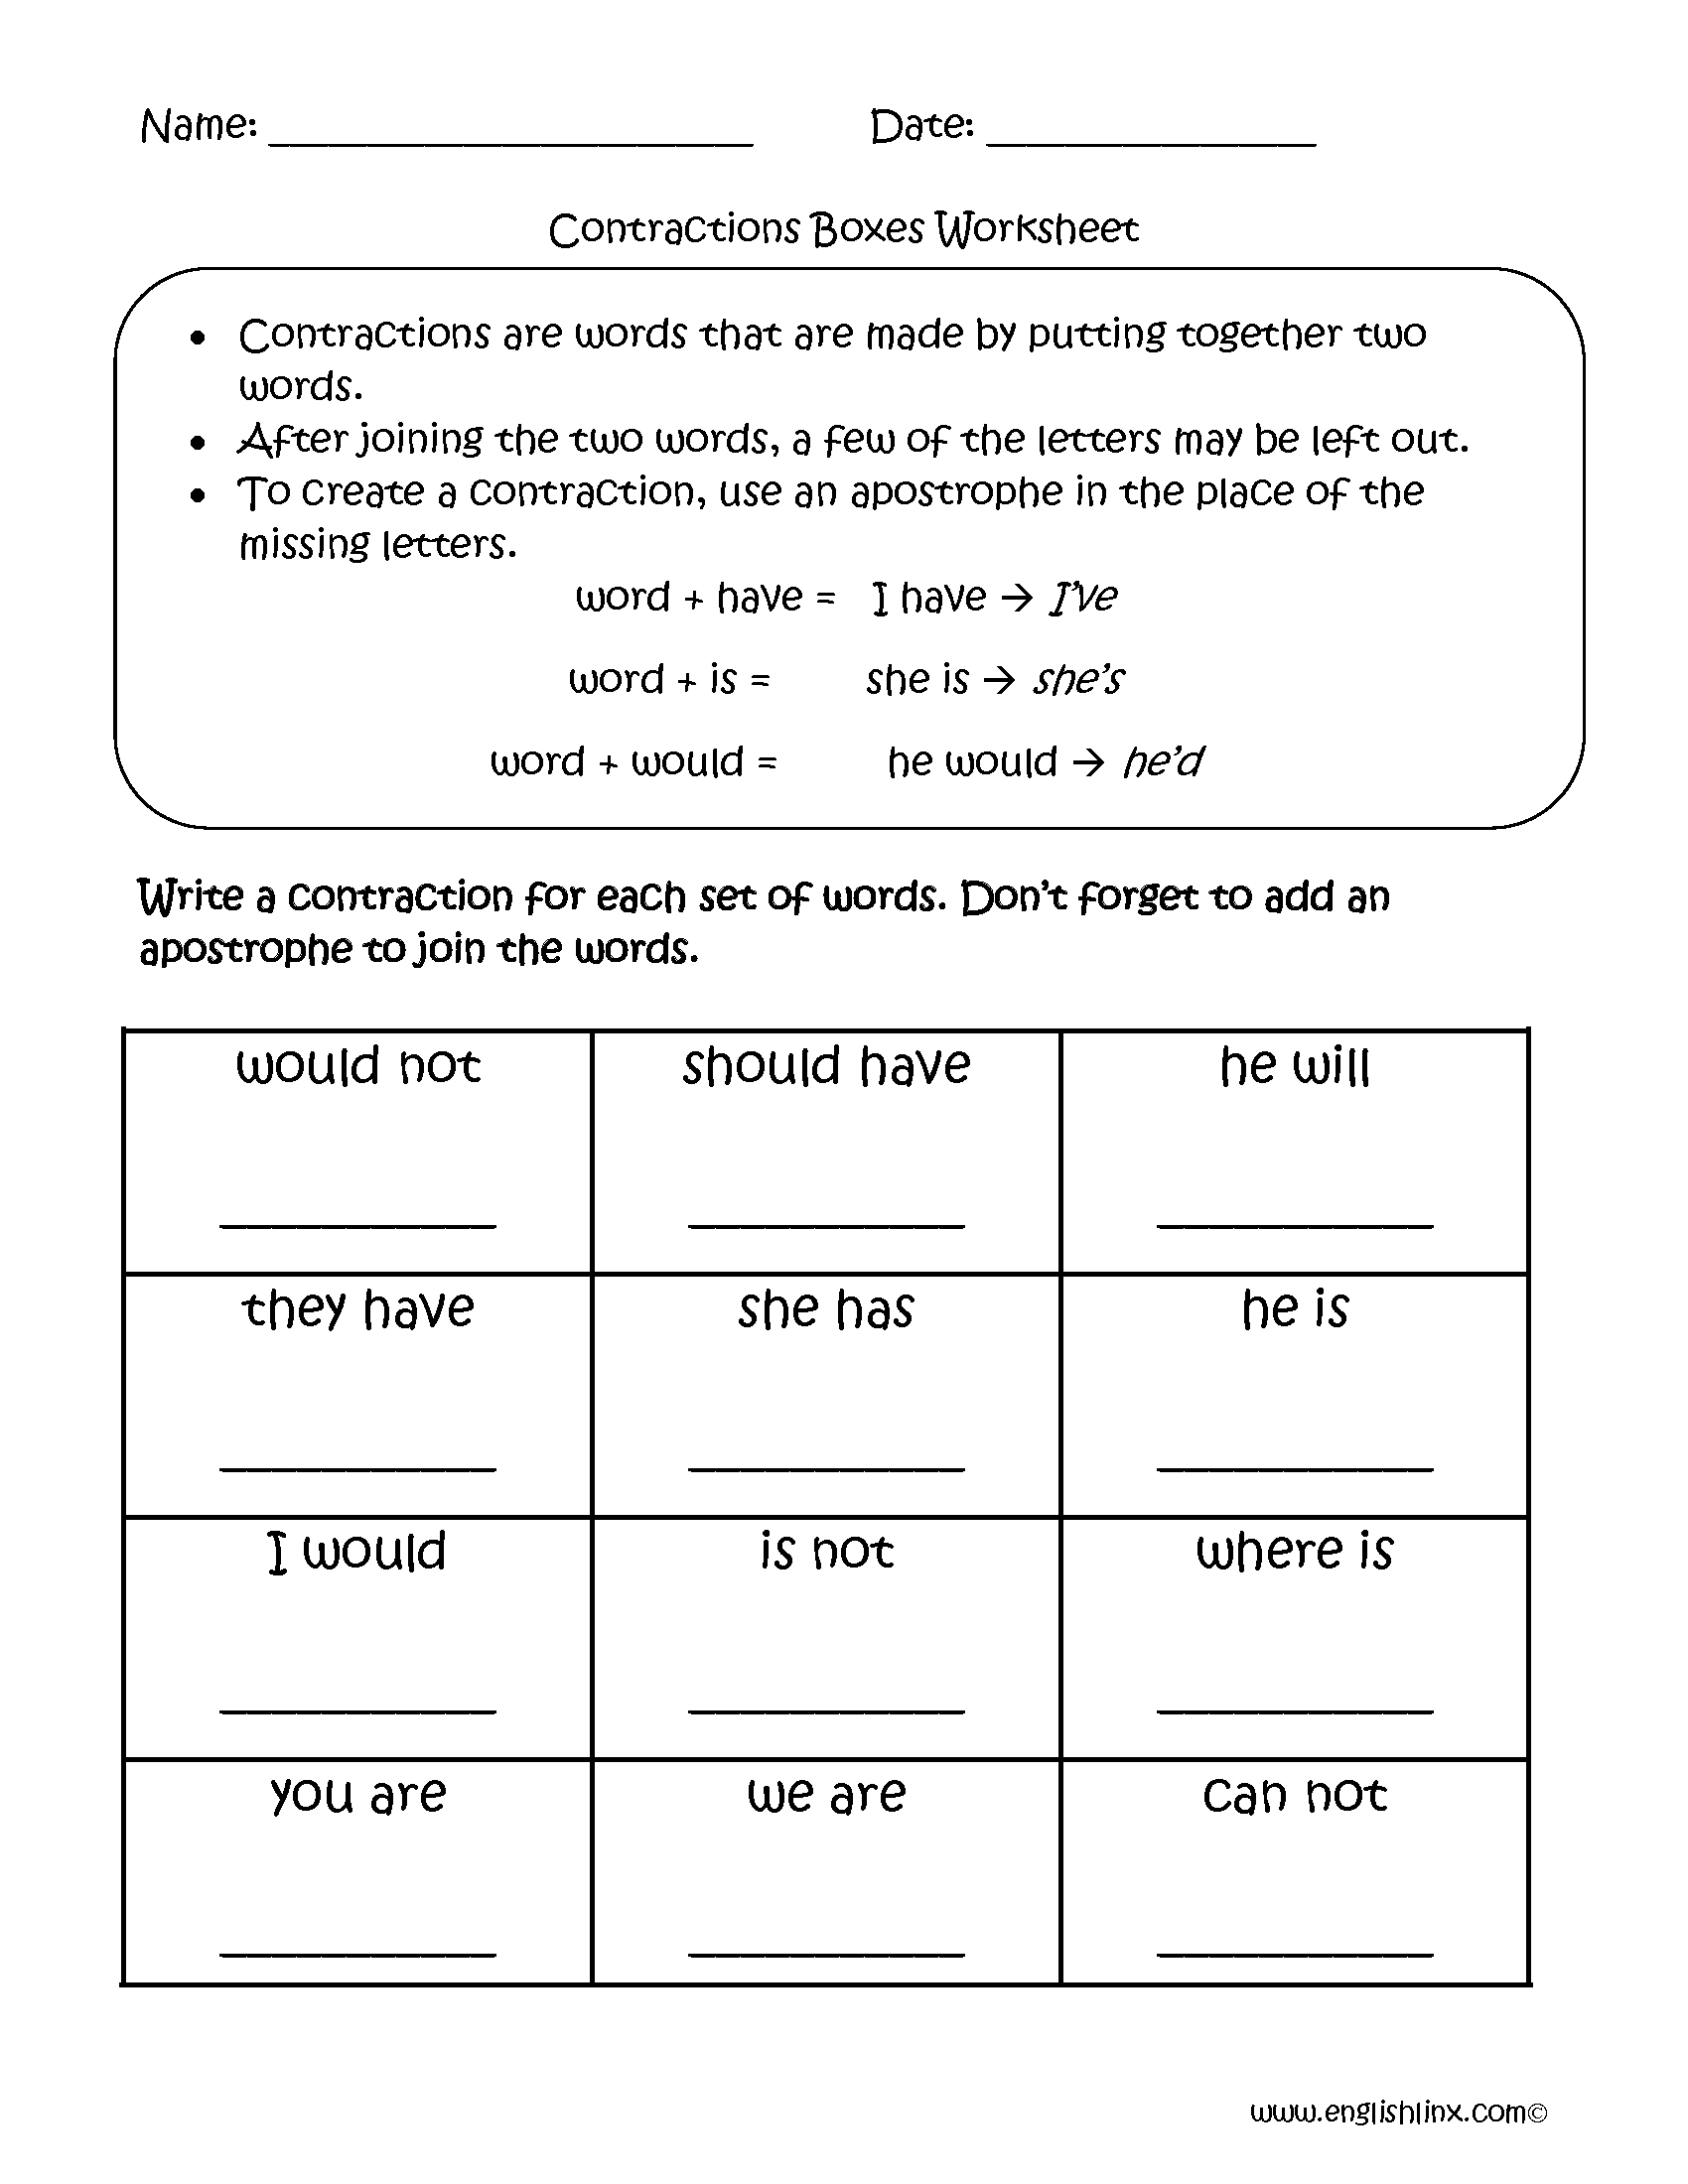 Contraction Worksheets For Third Grade